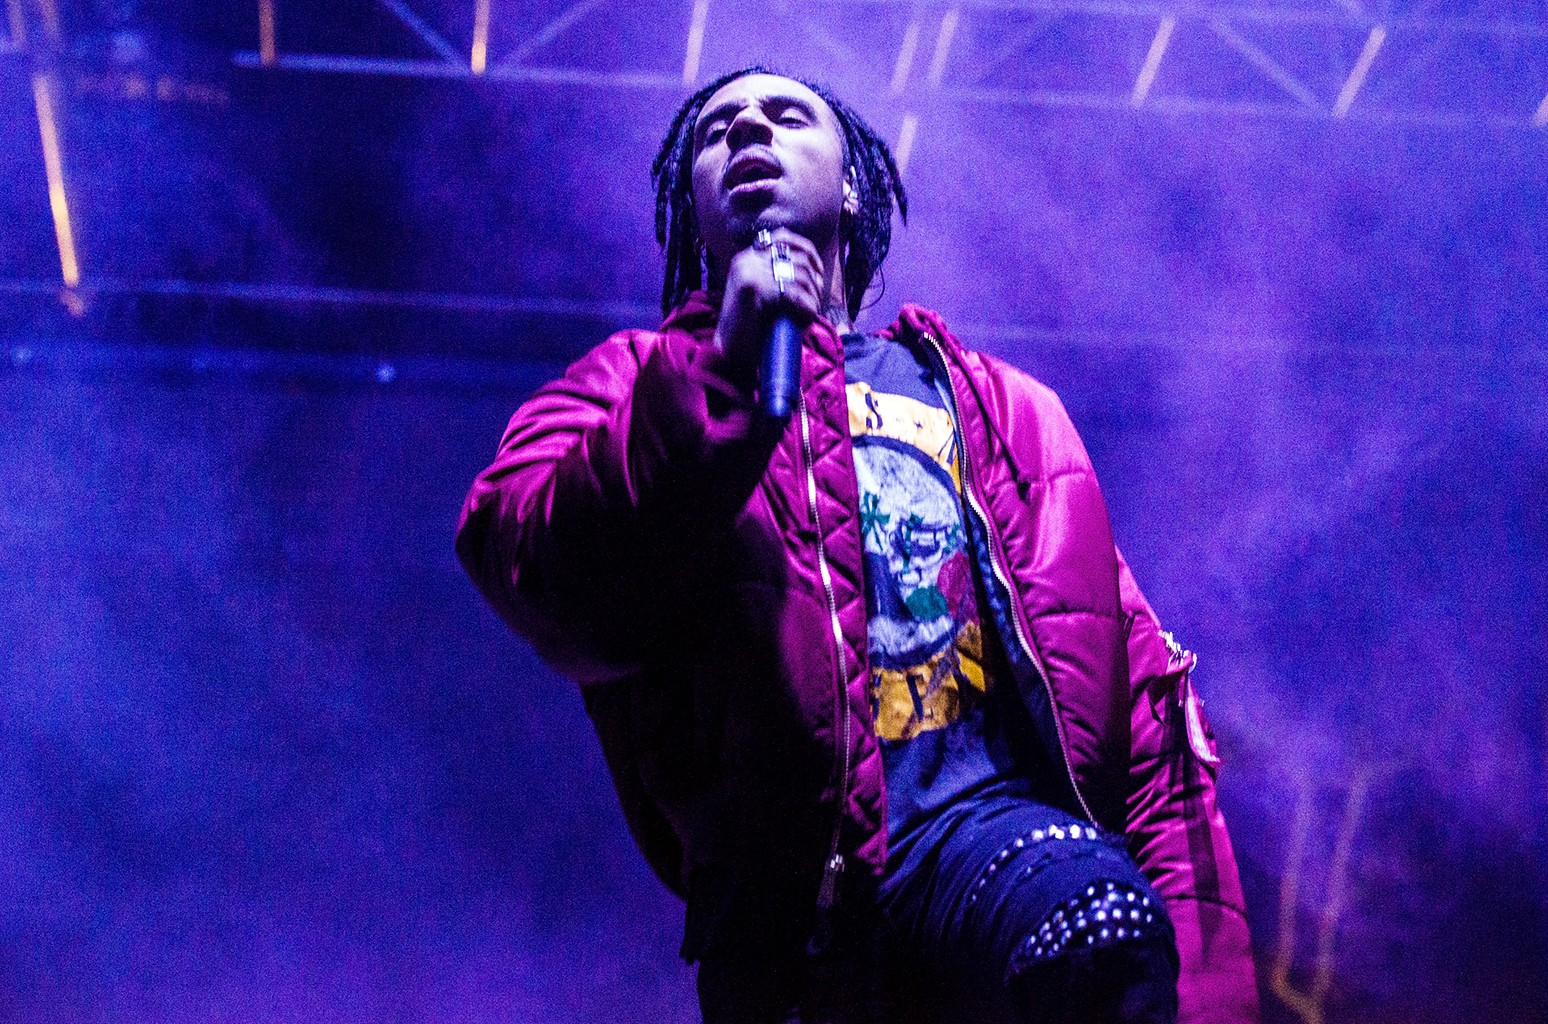 Vic Mensa performs during Air + Style Los Angeles 2017 at Exposition Park on Feb. 18, 2017 in Los Angeles.